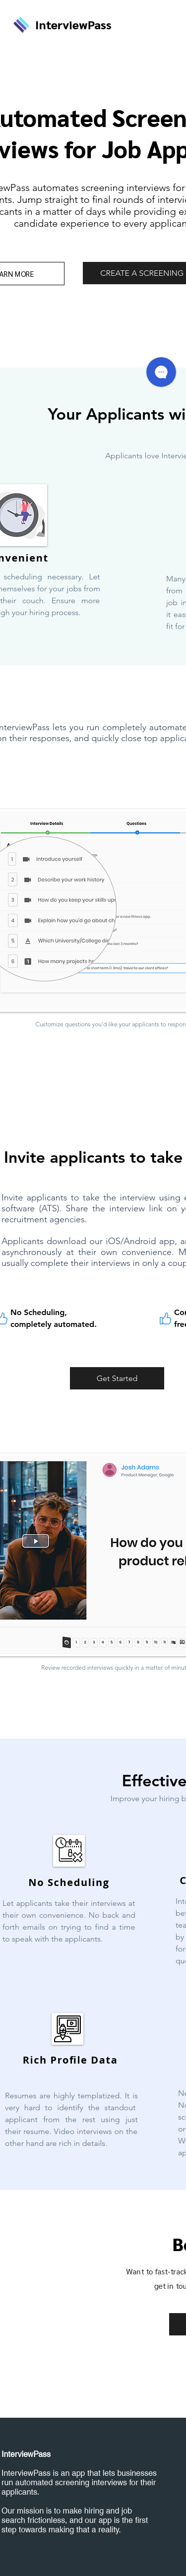 Example of Design for Jobs & Education, Jobs, Mobile Landing Page by interviewpass.co   Mobile Landing Page Design